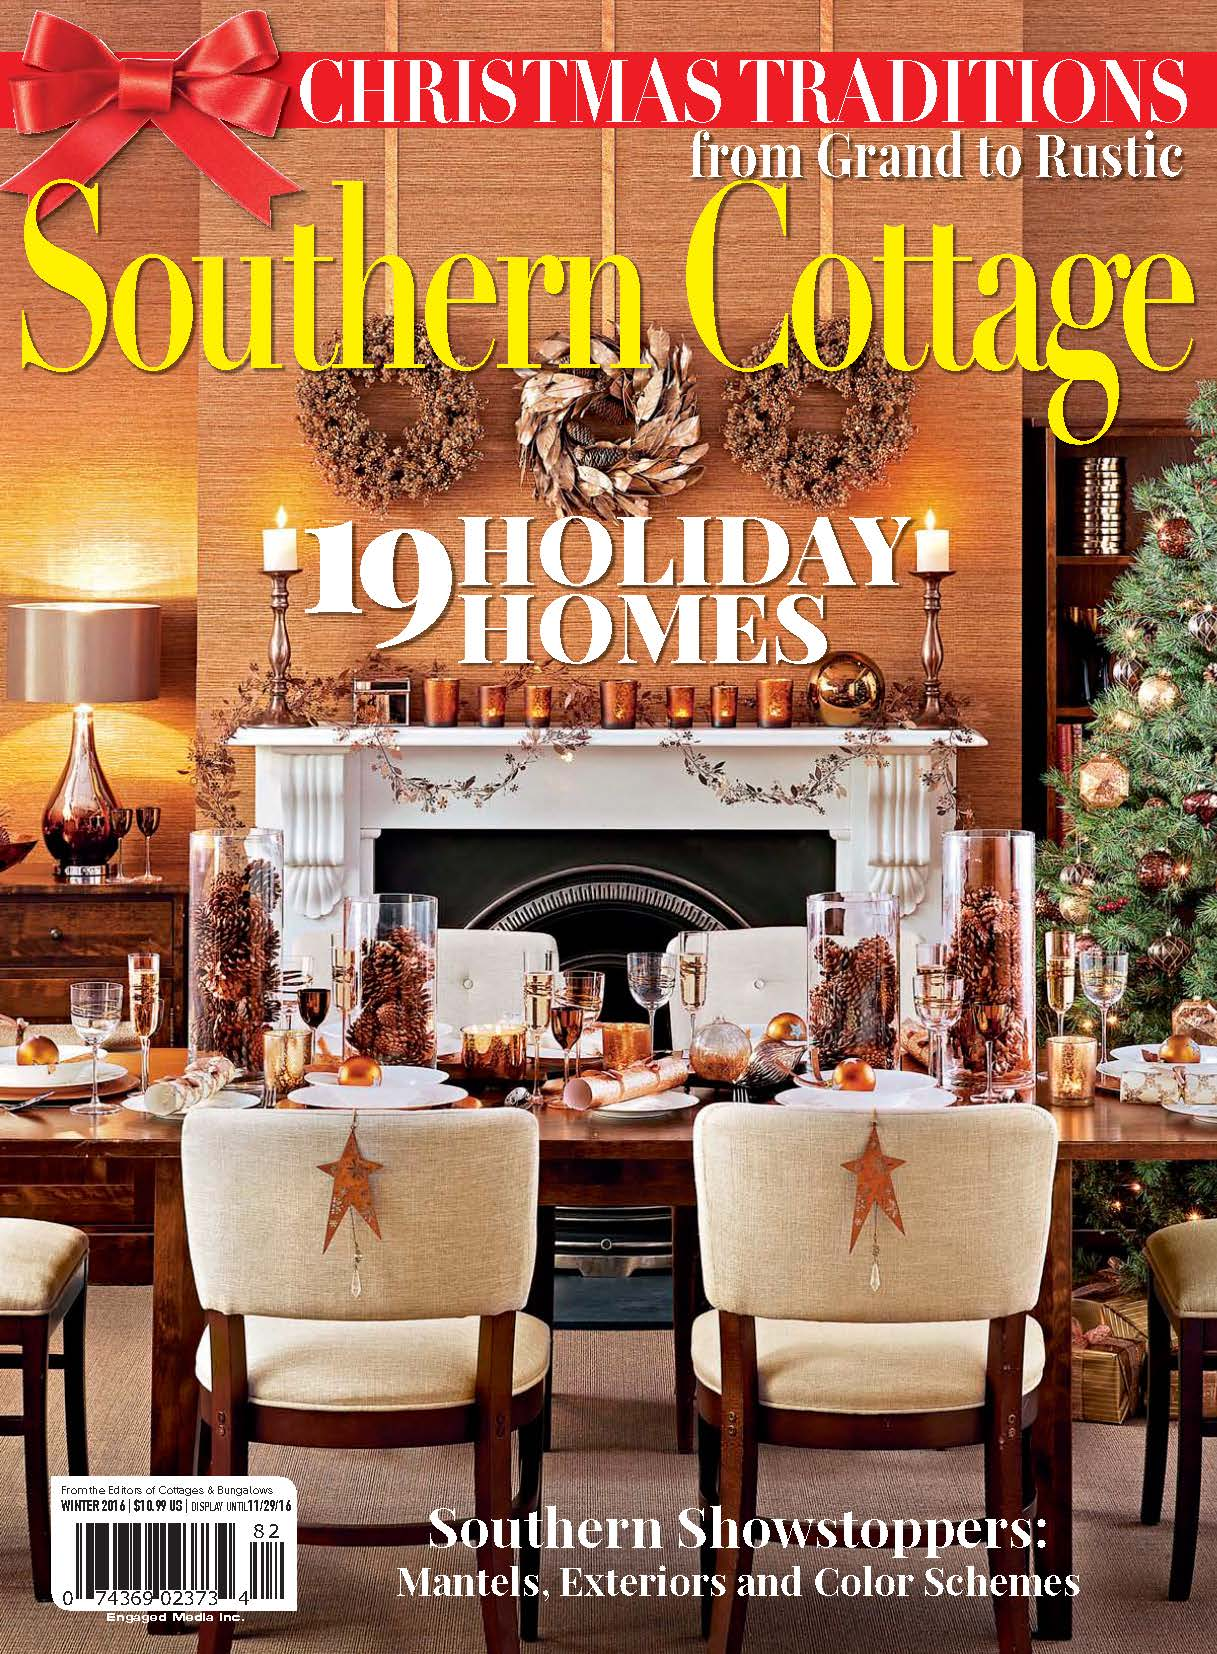 southern cottages_win16 1.jpg